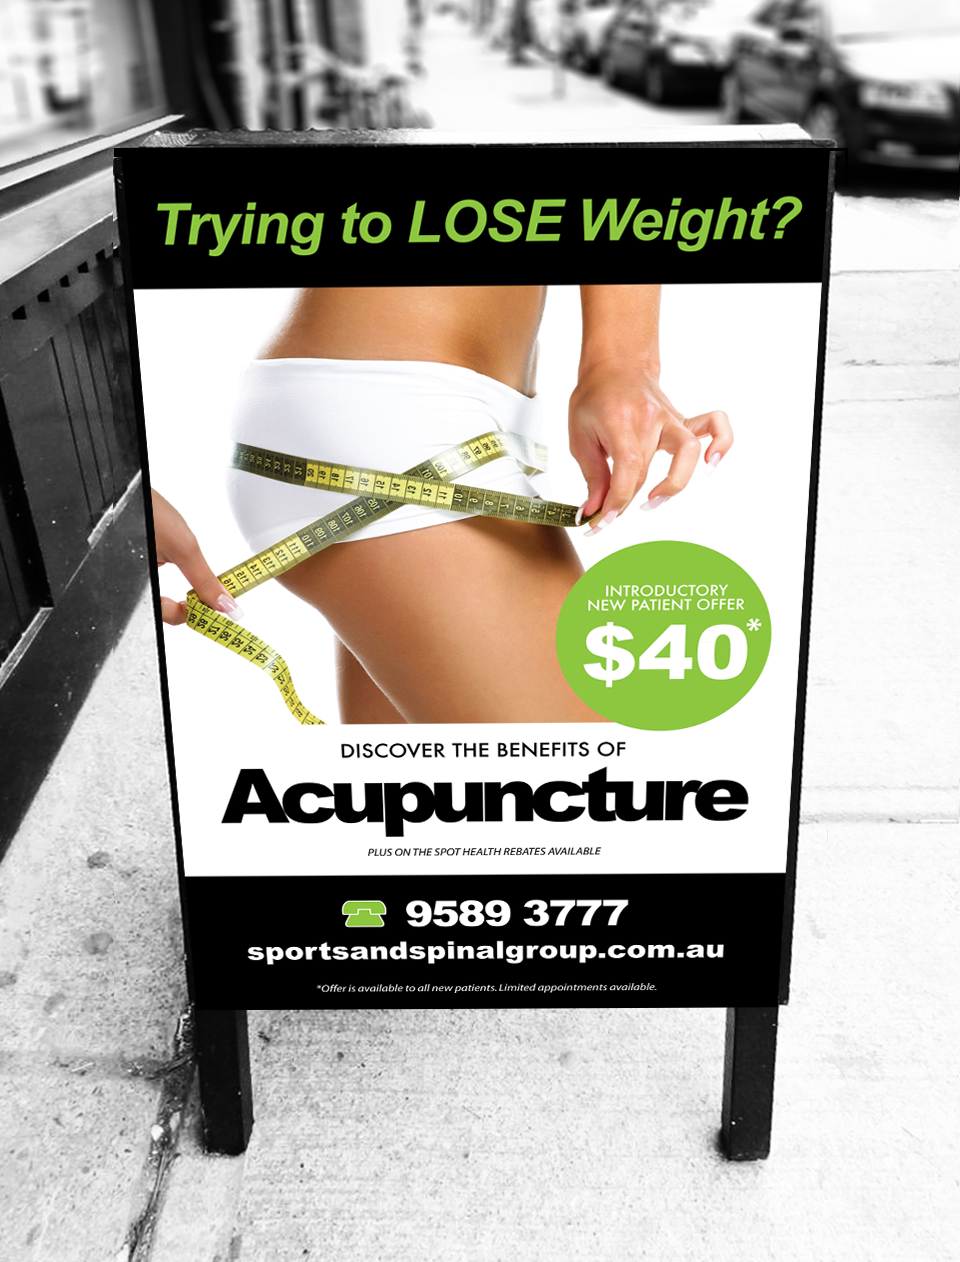 SSG_weightloss_sign_design.png